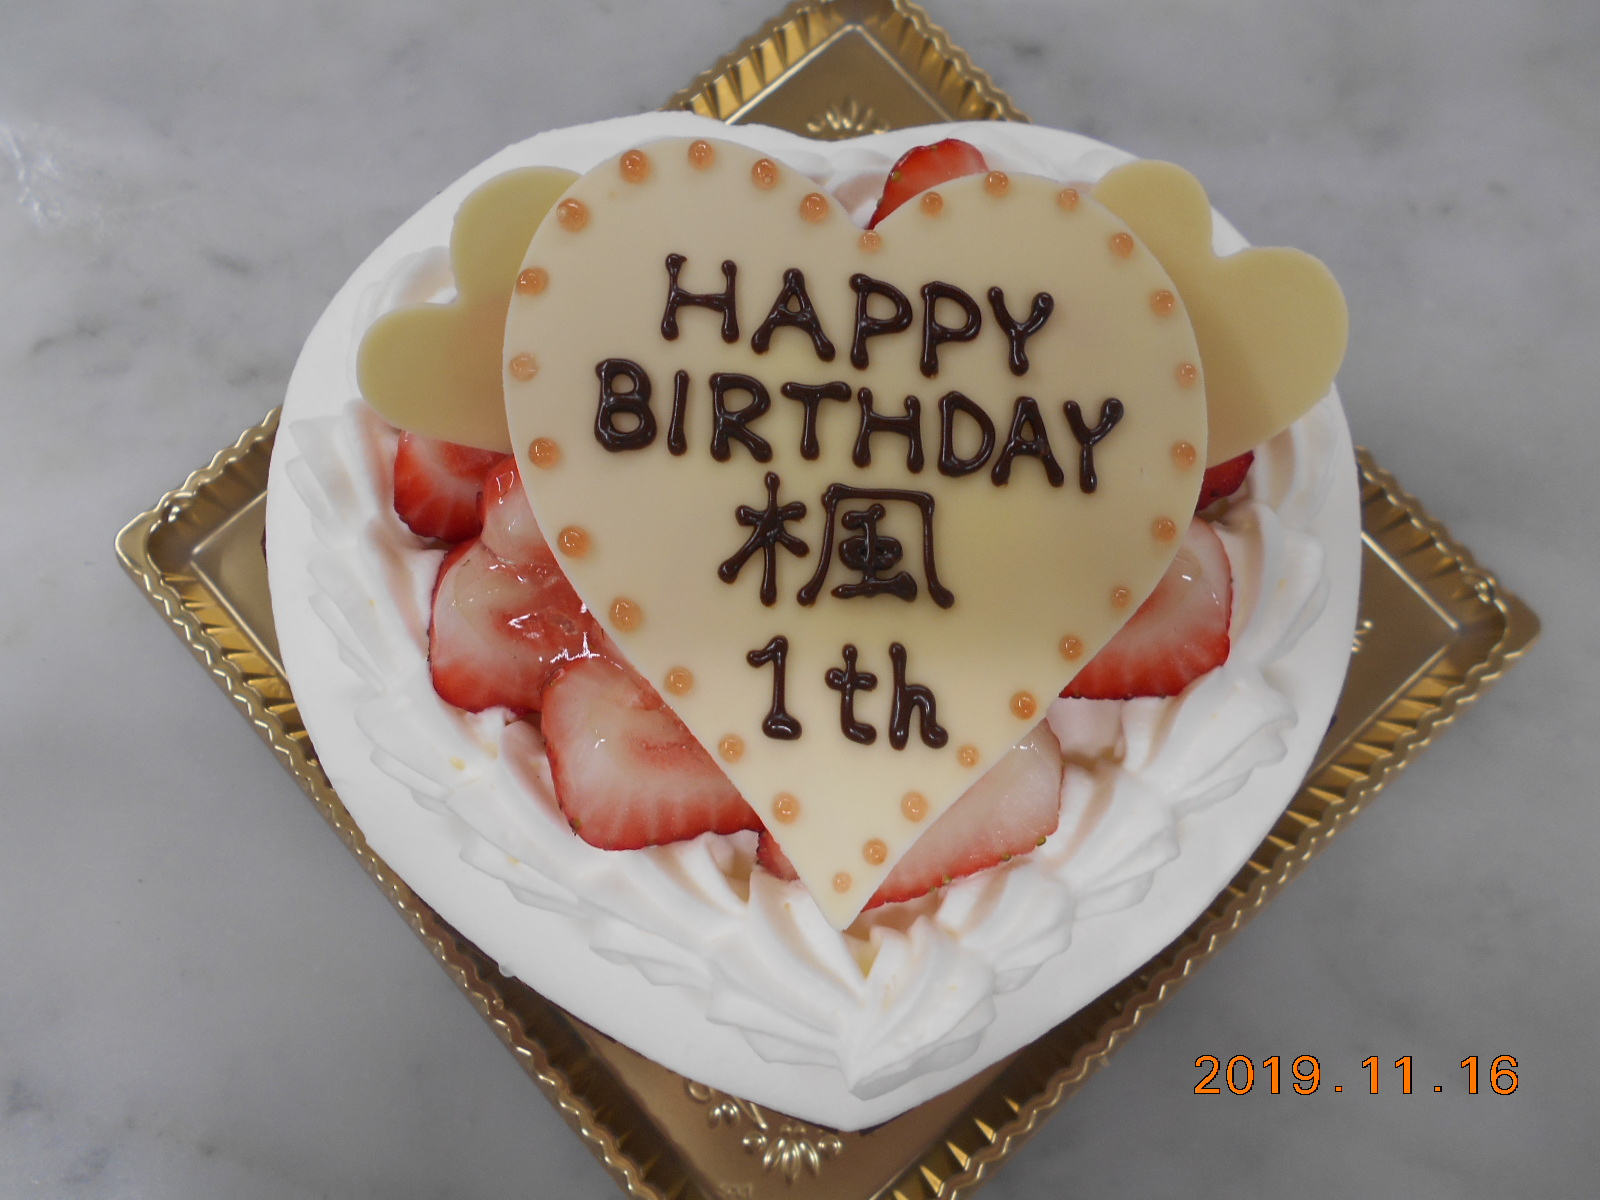 HAPPY BIRTHDAY 楓1th